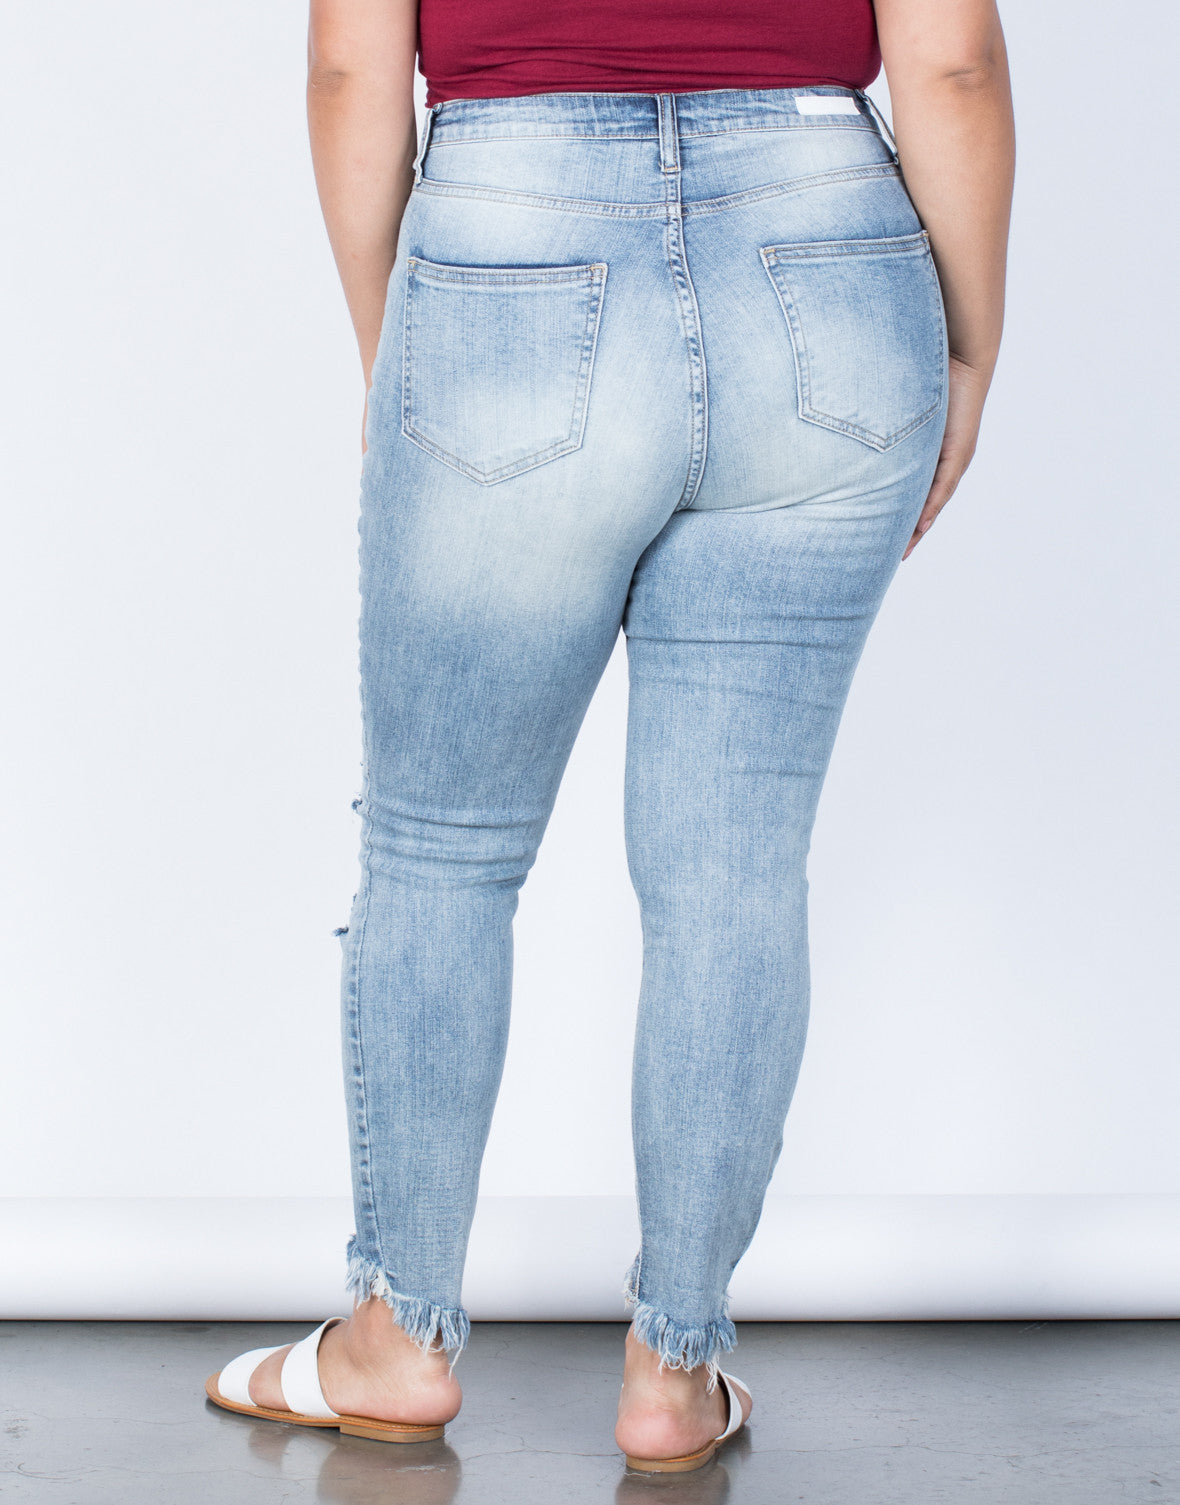 Light Blue Denim Plus Size Fun Frayed Jeans - Back View